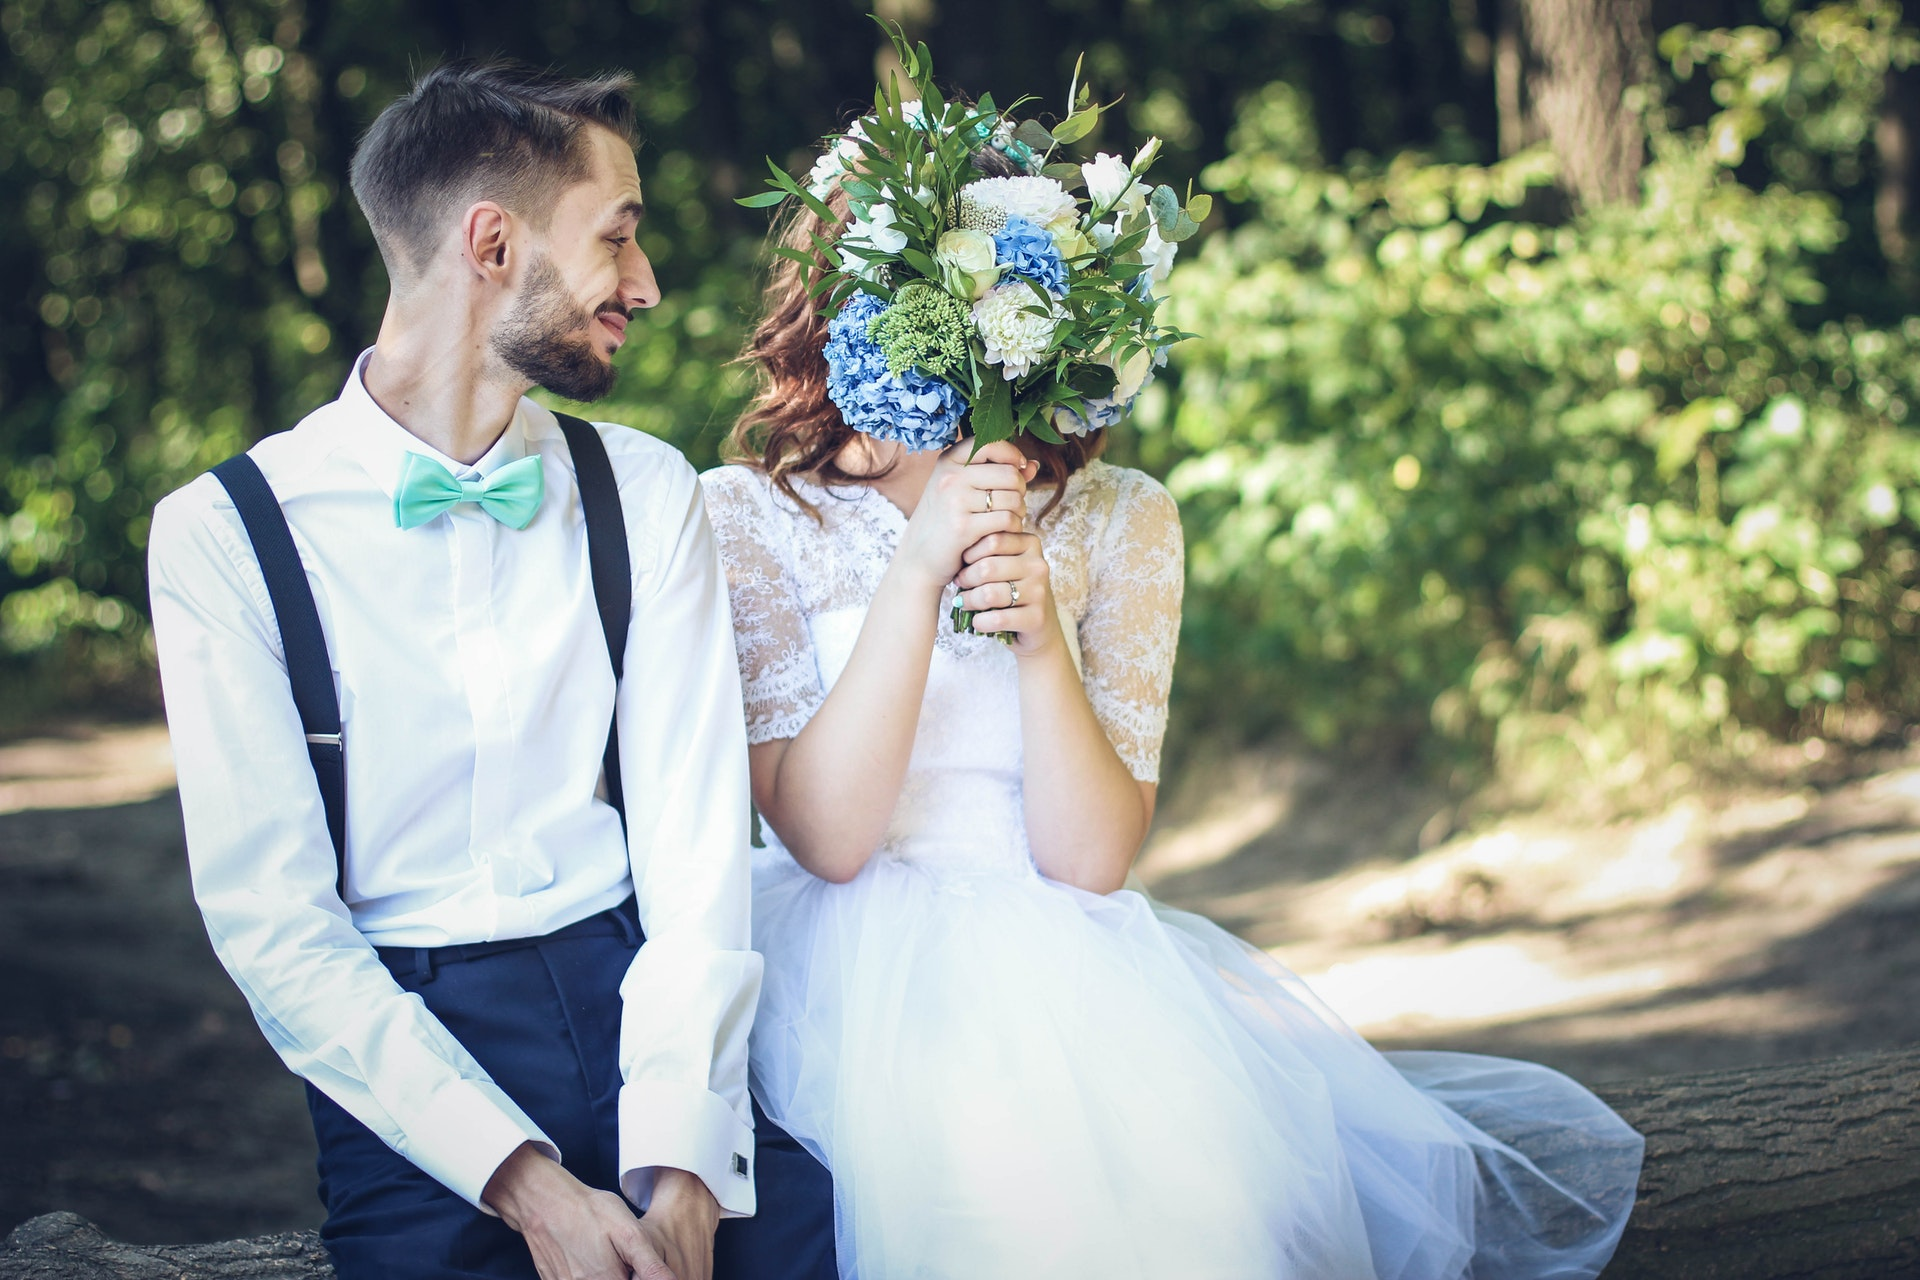 Real wedding moment candid photography bride and groom playful